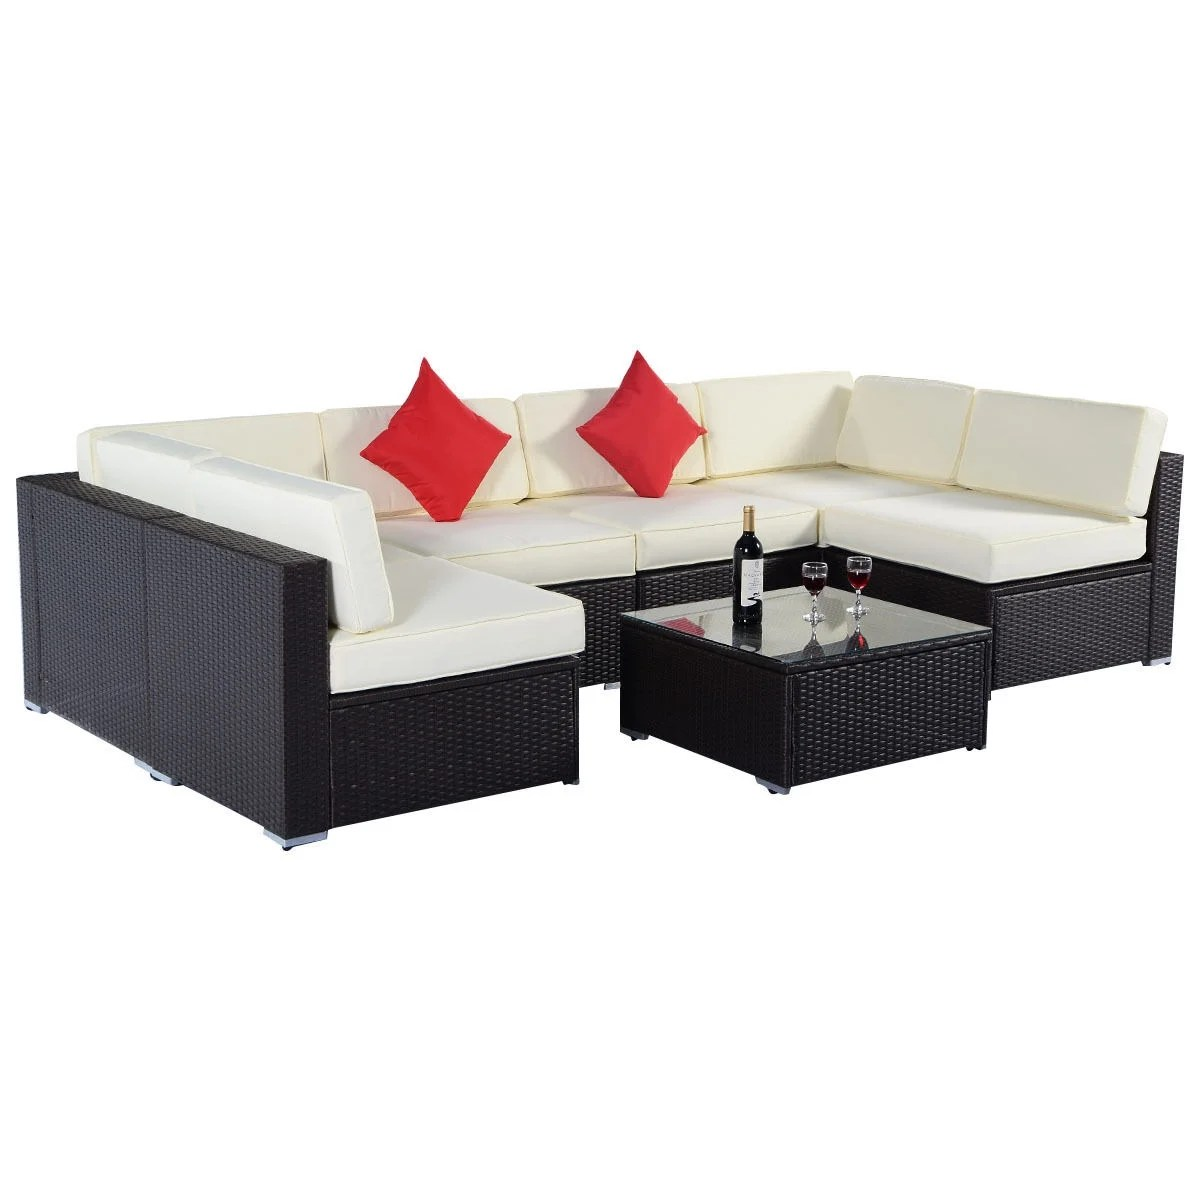 Rattan Sofa Near Me Costway 7pc Furniture Sectional Pe Wicker Patio Rattan Sofa Set Couch Brown As Pic